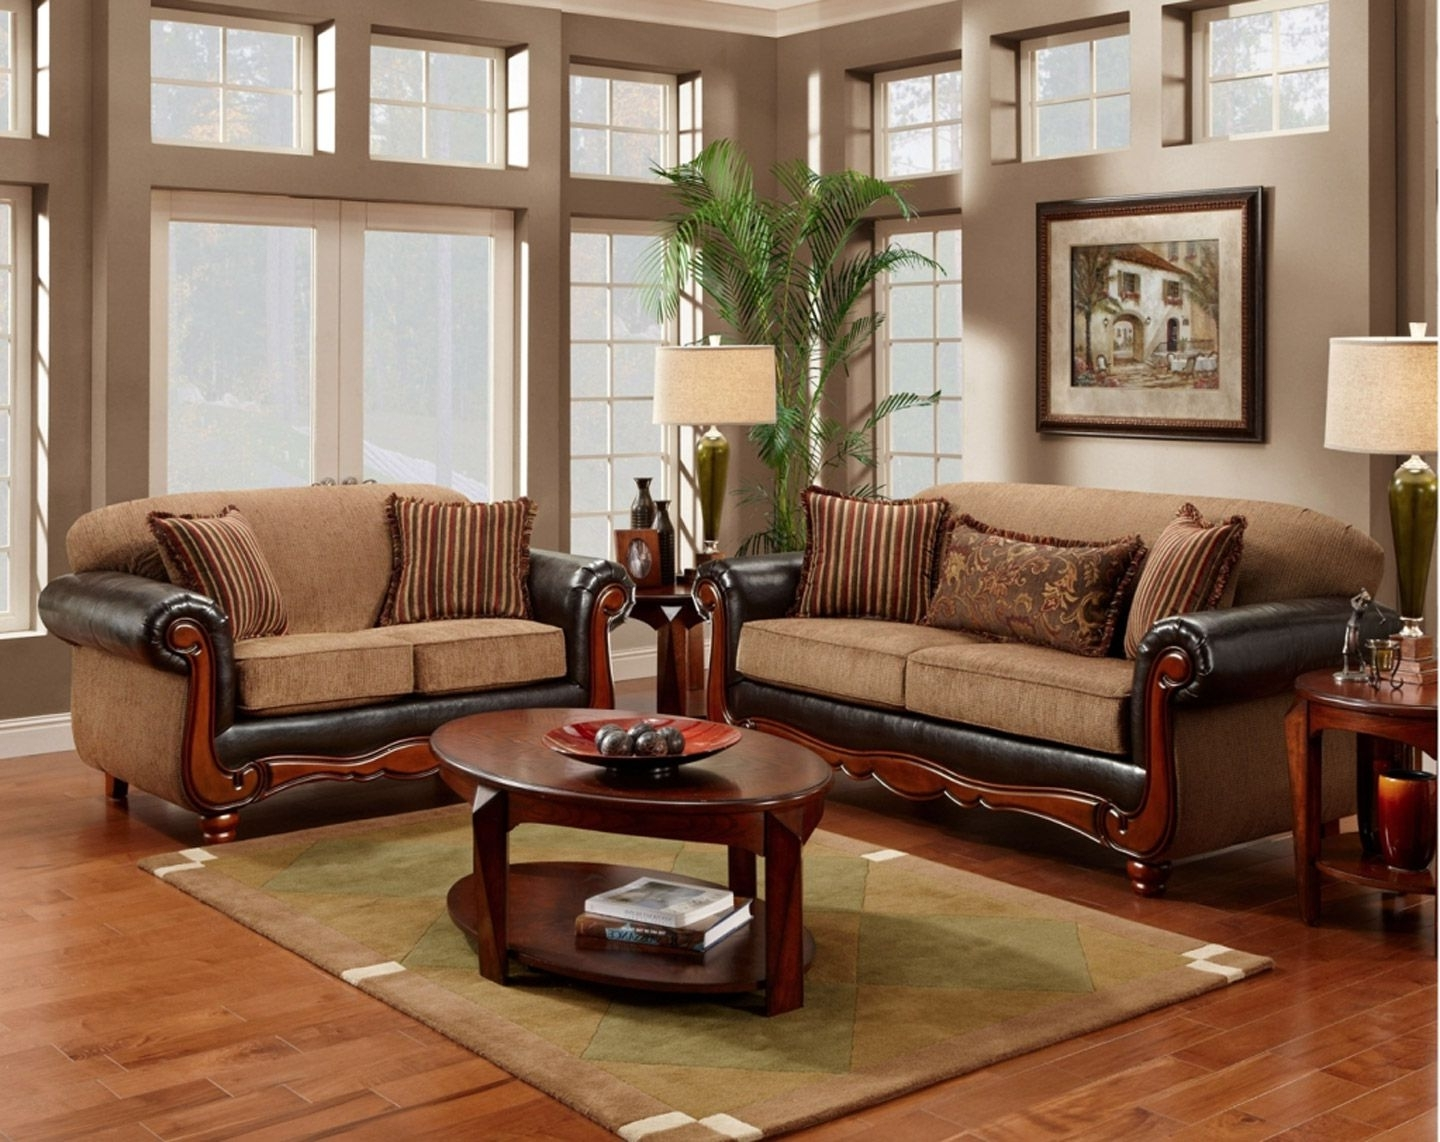 Delectable Living Room Furniture With Wood Trim Design Ideas With For Trendy Traditional Sofas And Chairs (View 2 of 20)